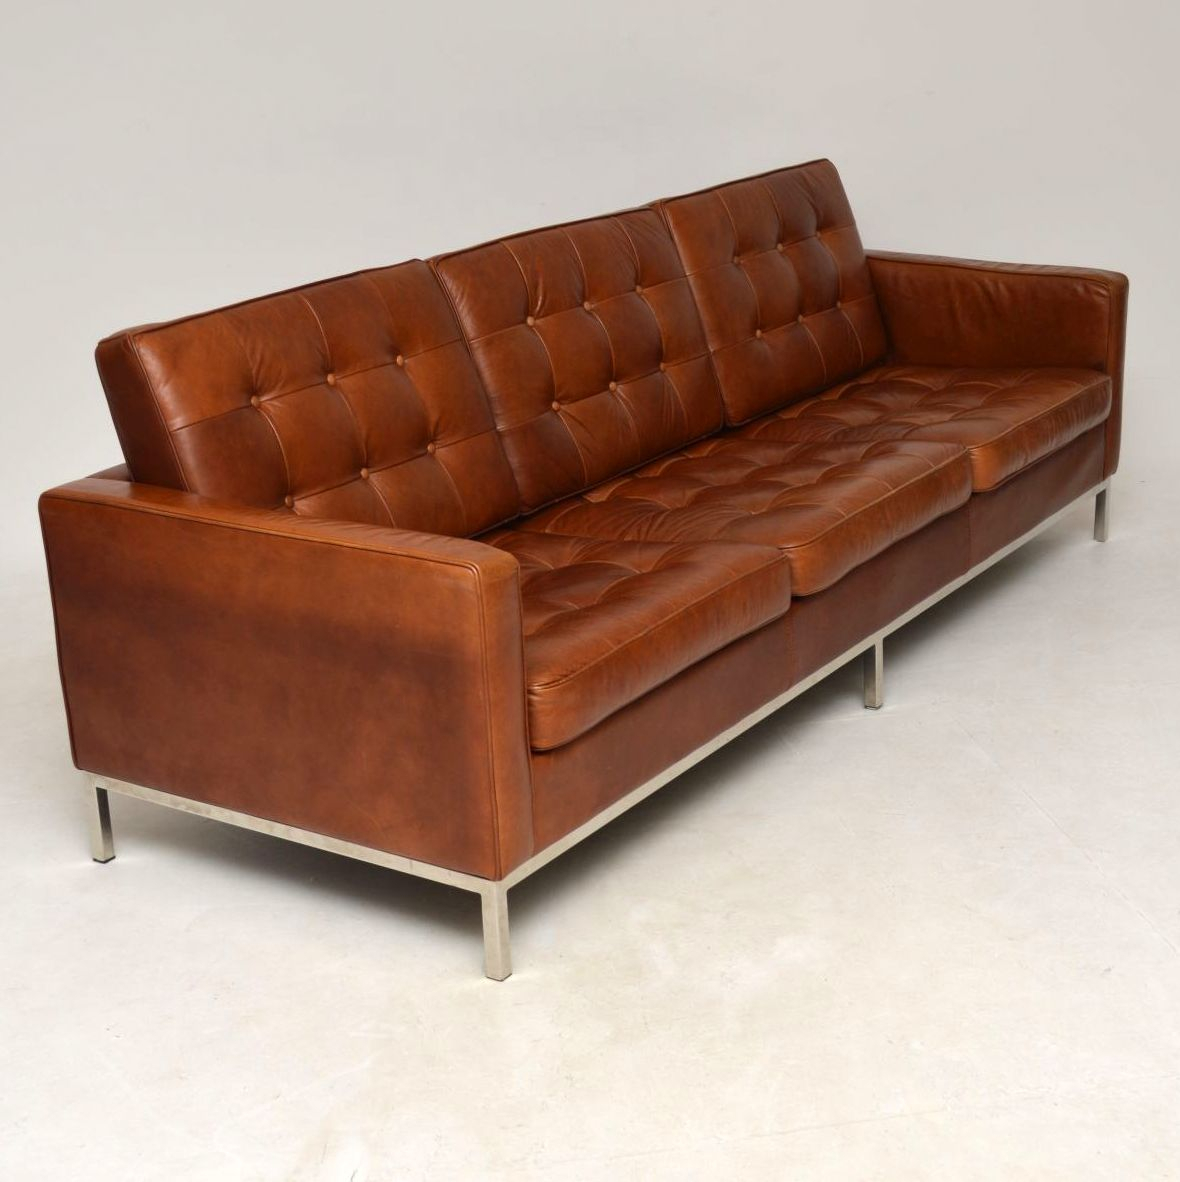 Vintage Florence Knoll Leather & Chrome Sofa | Interior Inside Florence Leather Sofas (View 3 of 15)